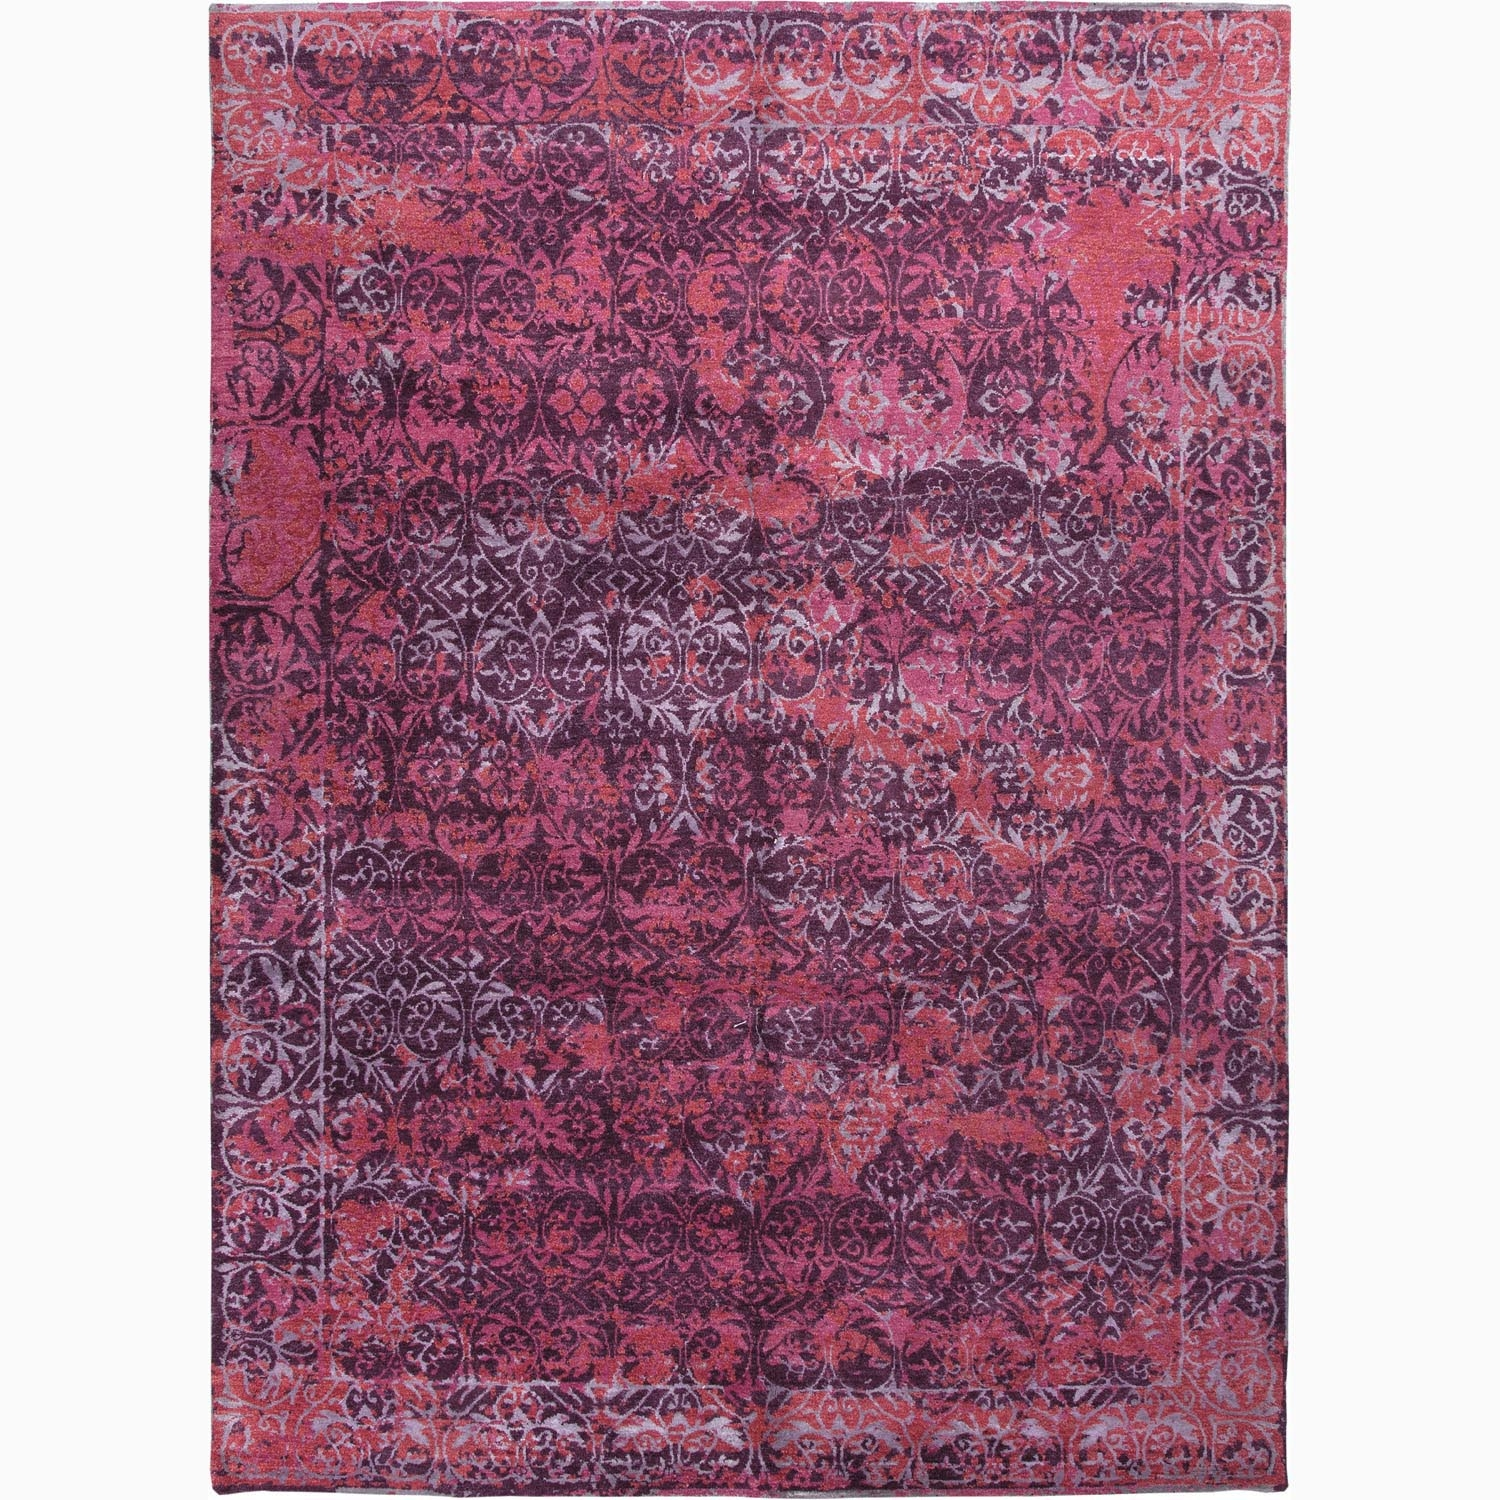 15 Best Collection Of Pink Pattern Rugs Area Rugs Ideas